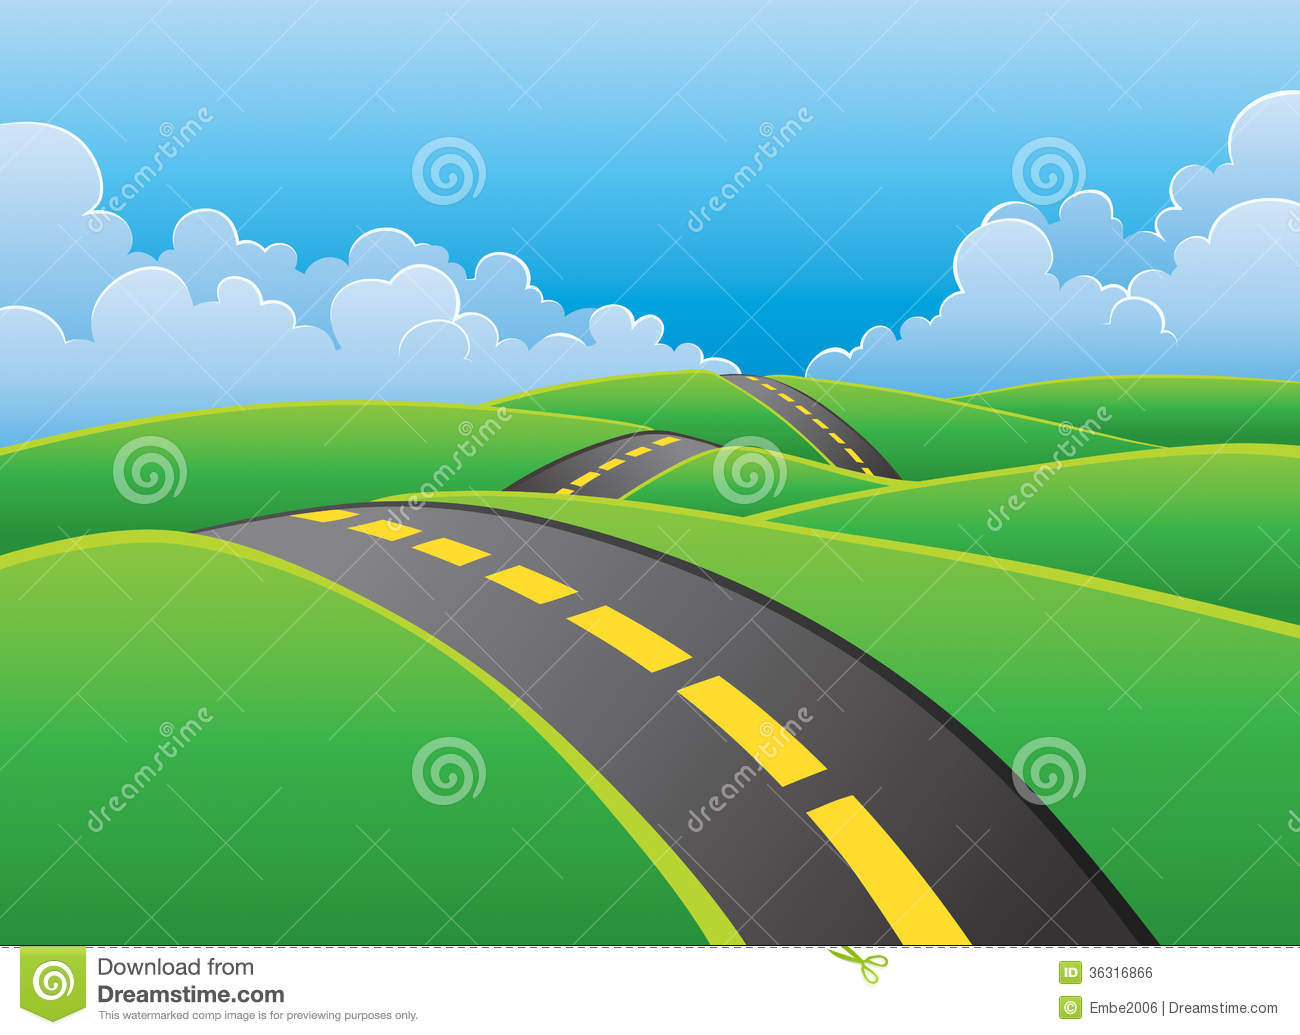 road background clip art - photo #9